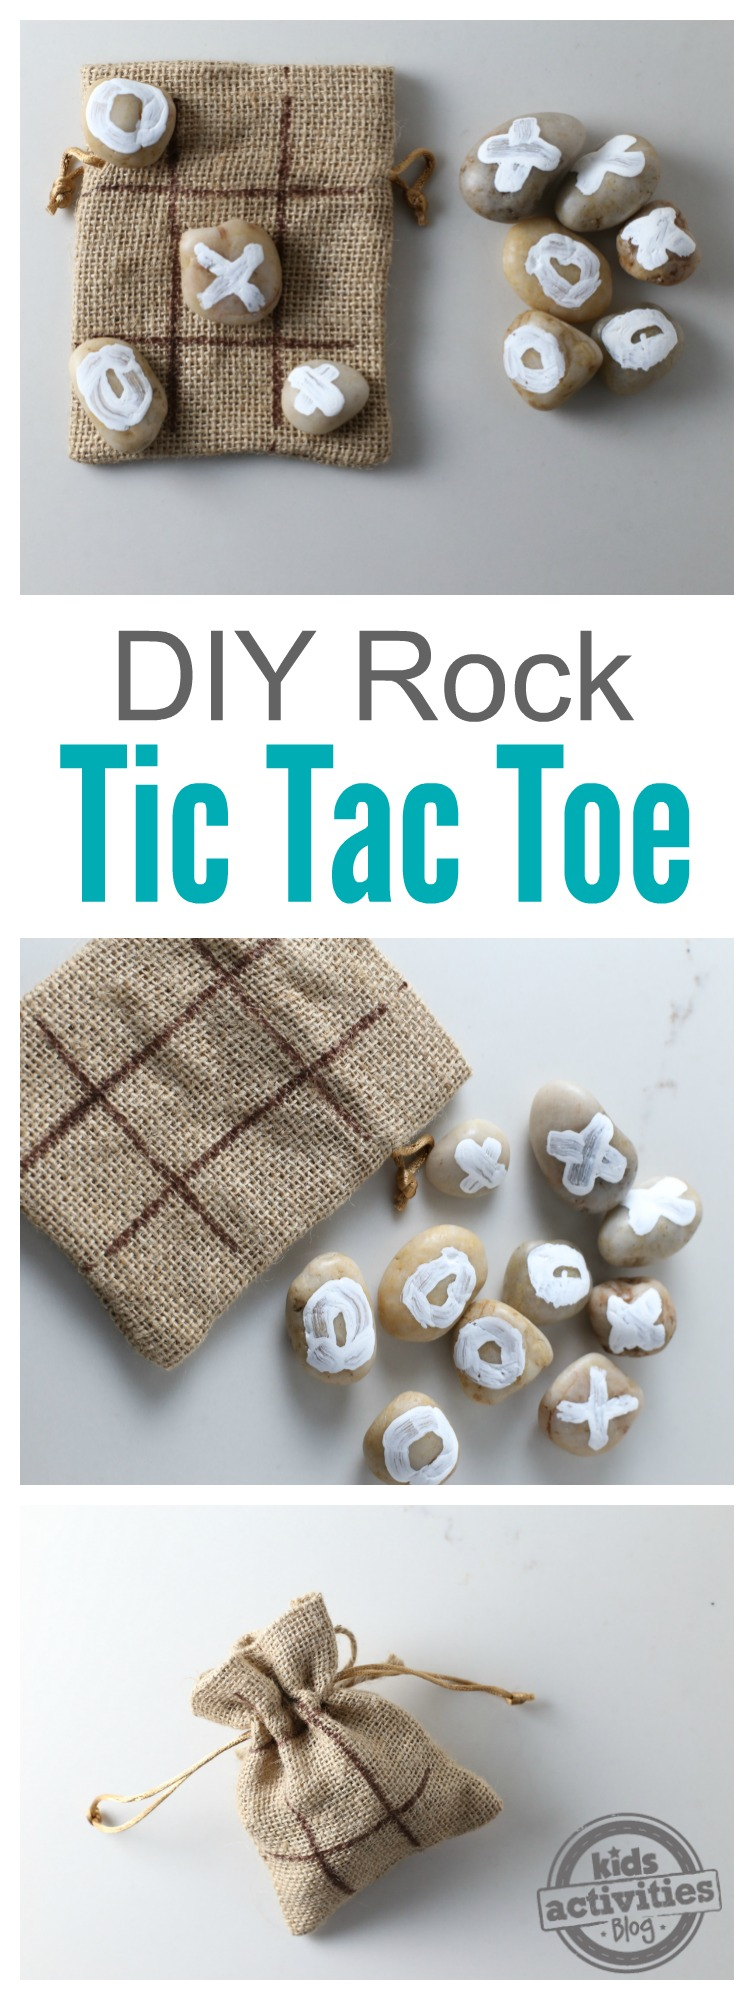 DIY Rock Tic Tac Toe